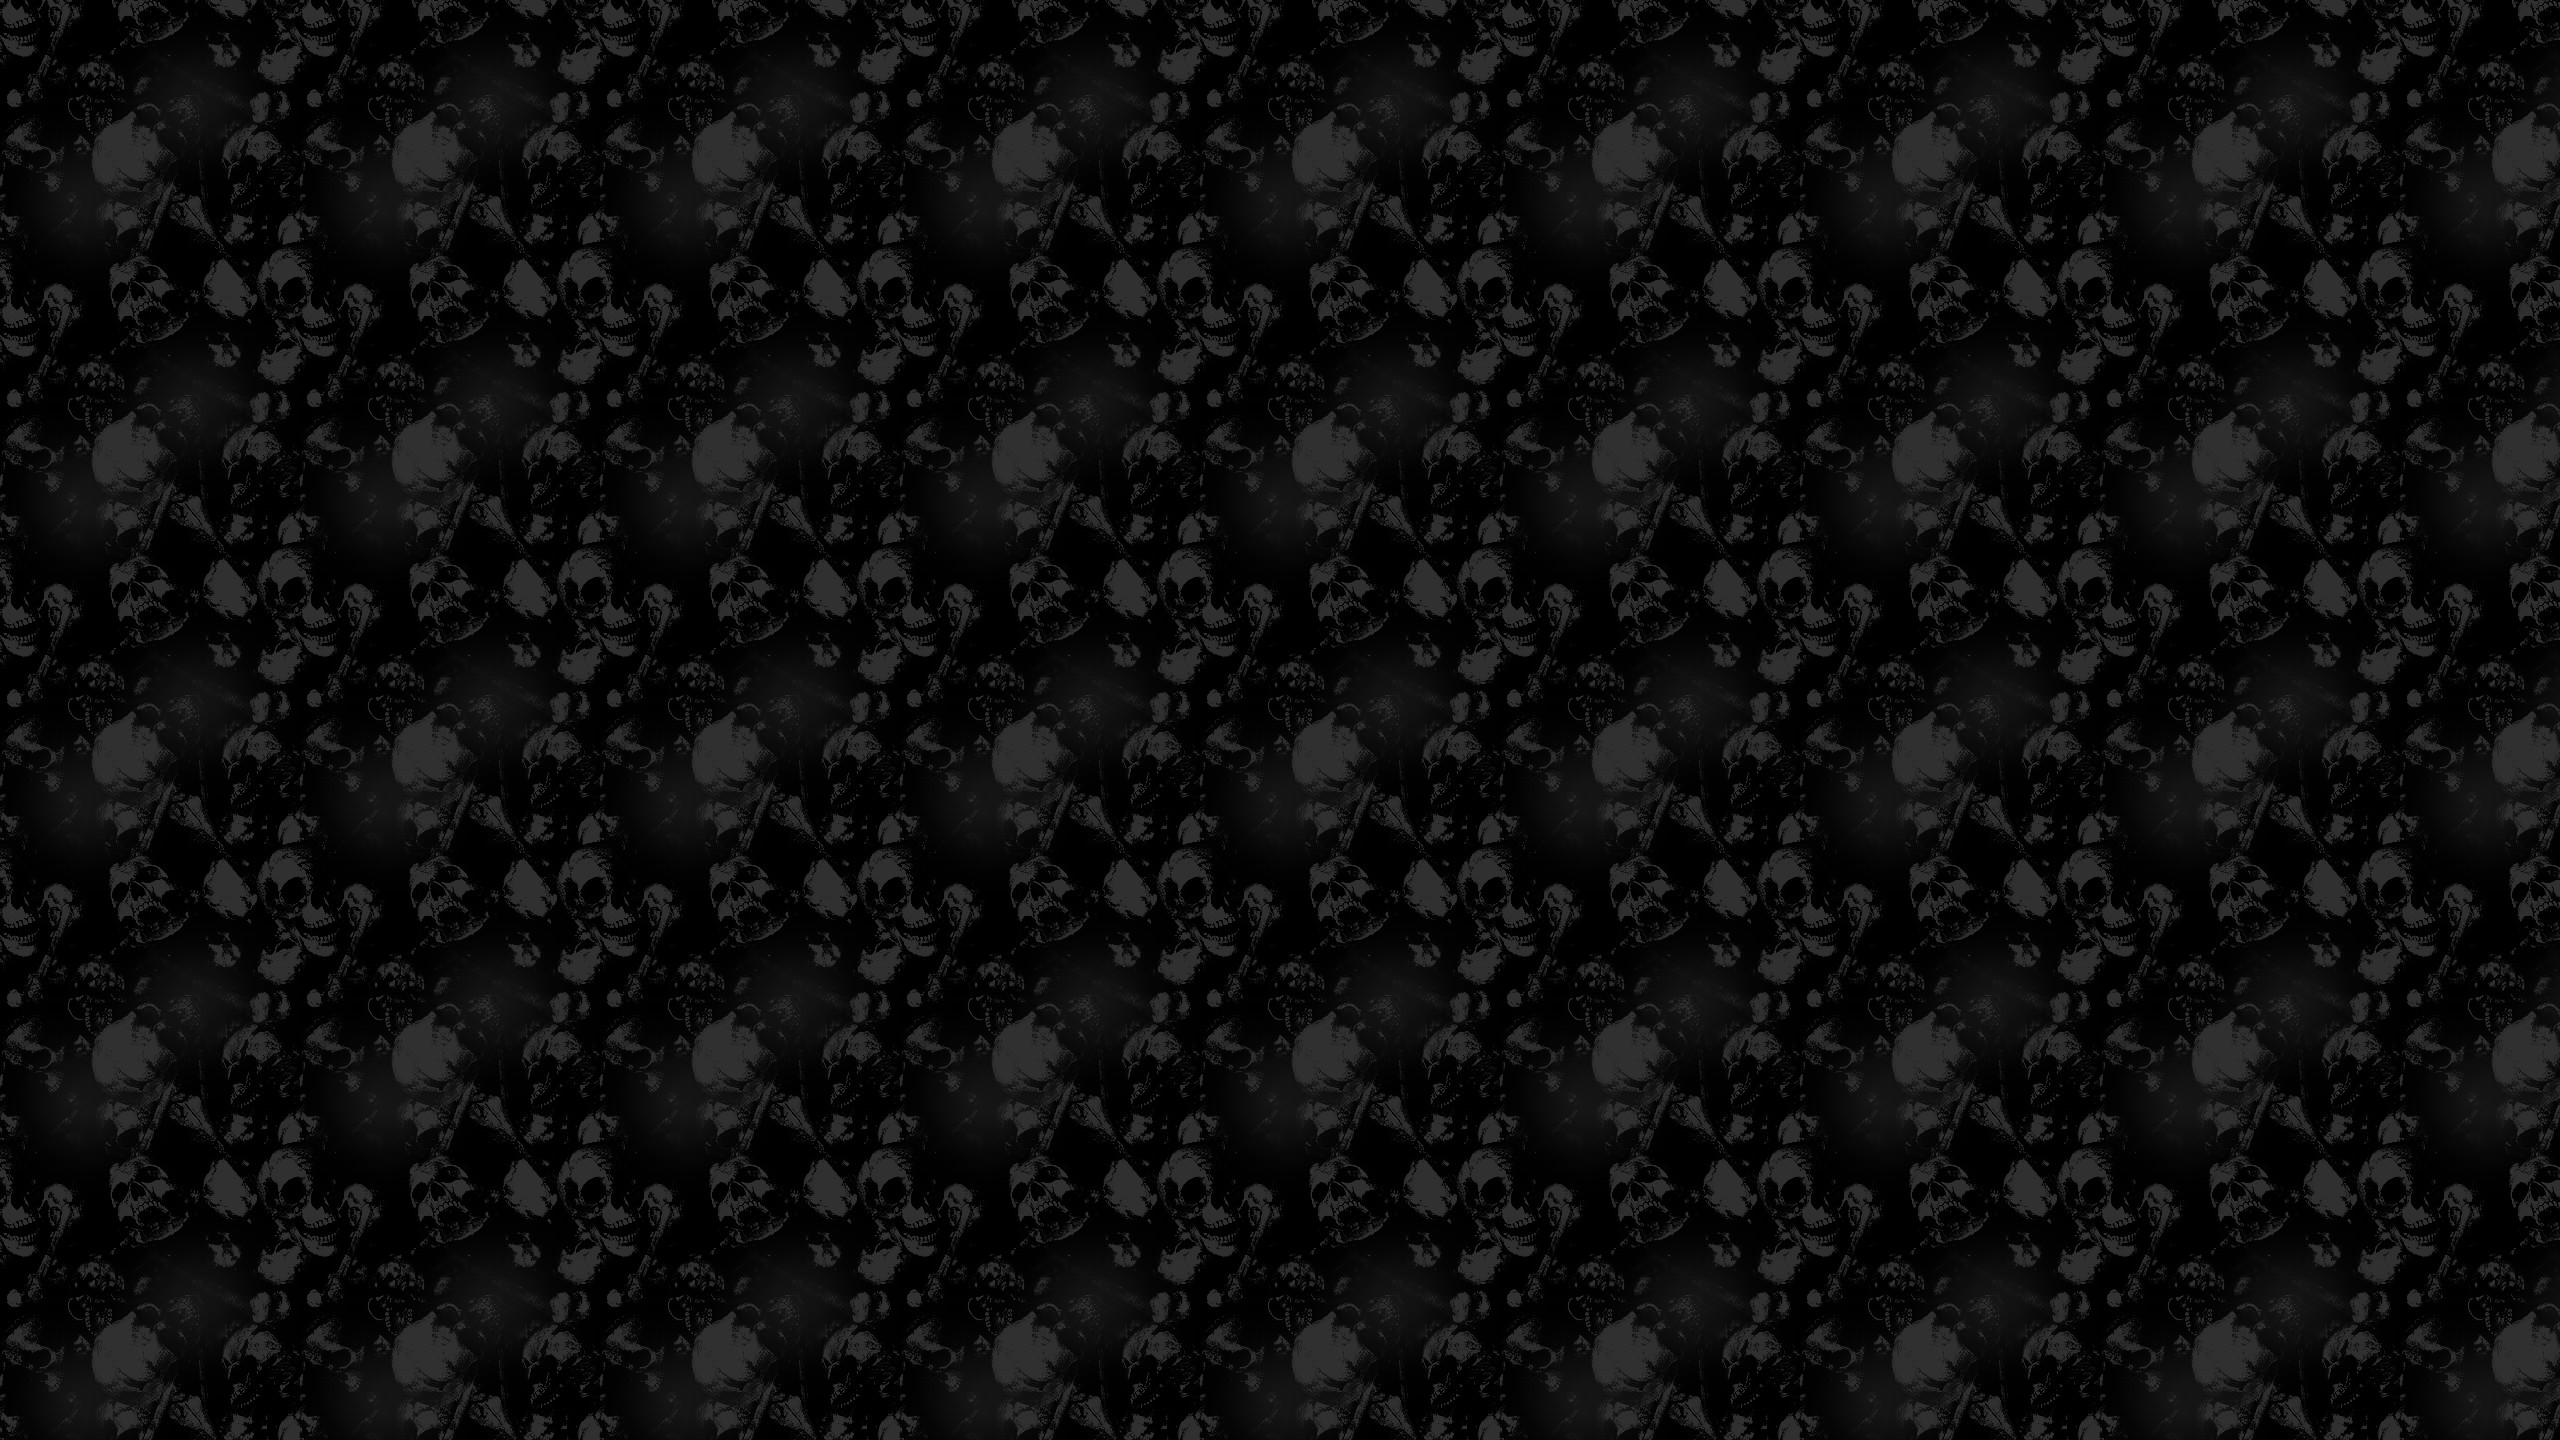 Girly Skull Wallpaper Backgrounds Posted By Zoey Mercado